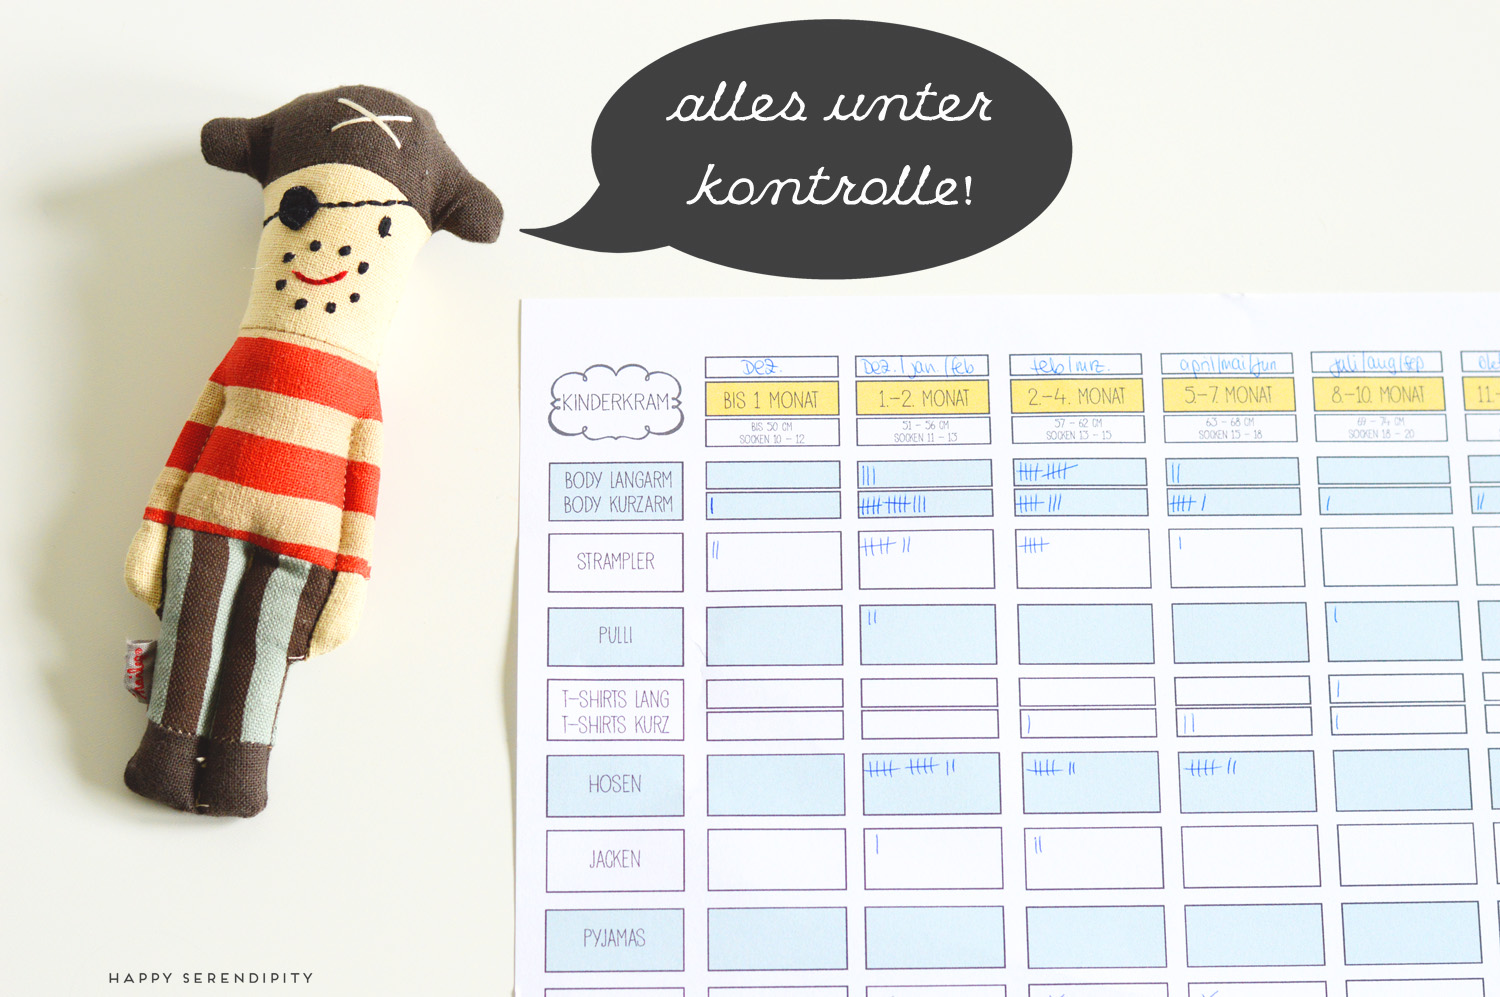 kinderkram-alles unter kontrolle-freedownload-kinderorganisation-happyserendipity